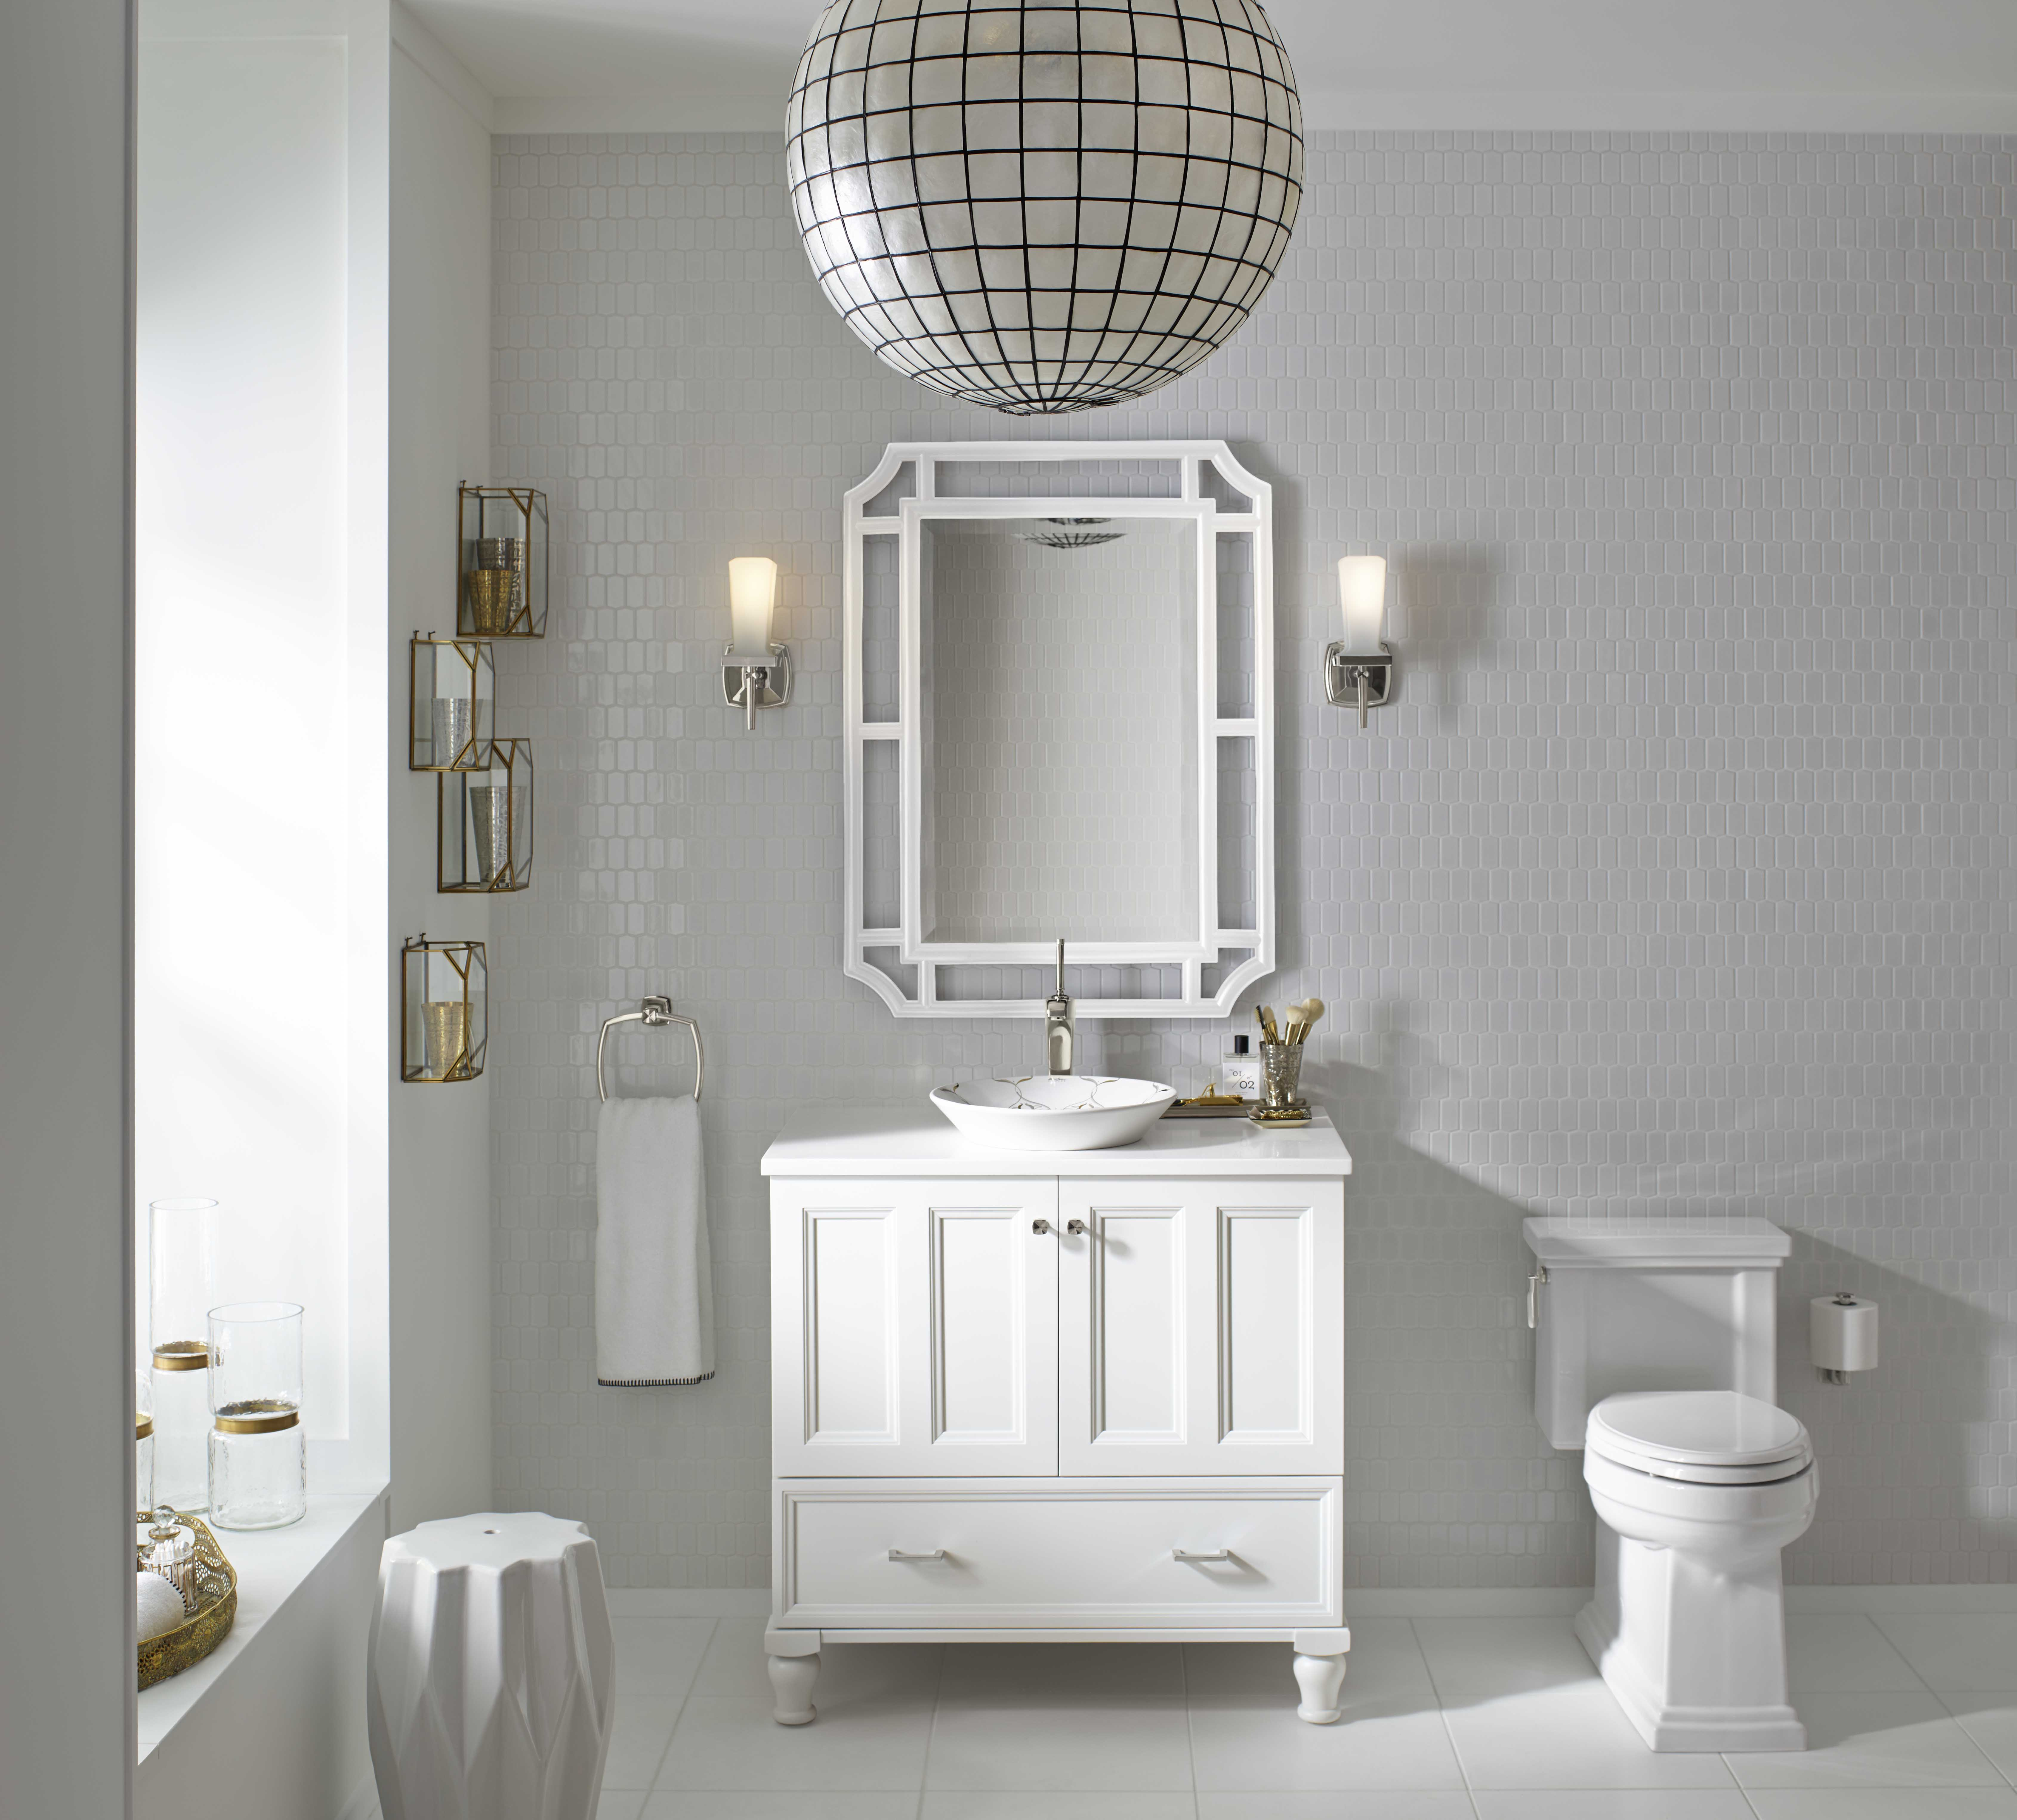 Damask® Vanity     Damask medicine cabinet surround     Verdera medicine cabinet     A wider vanity with two mirrors can make sharing the styling space easier.